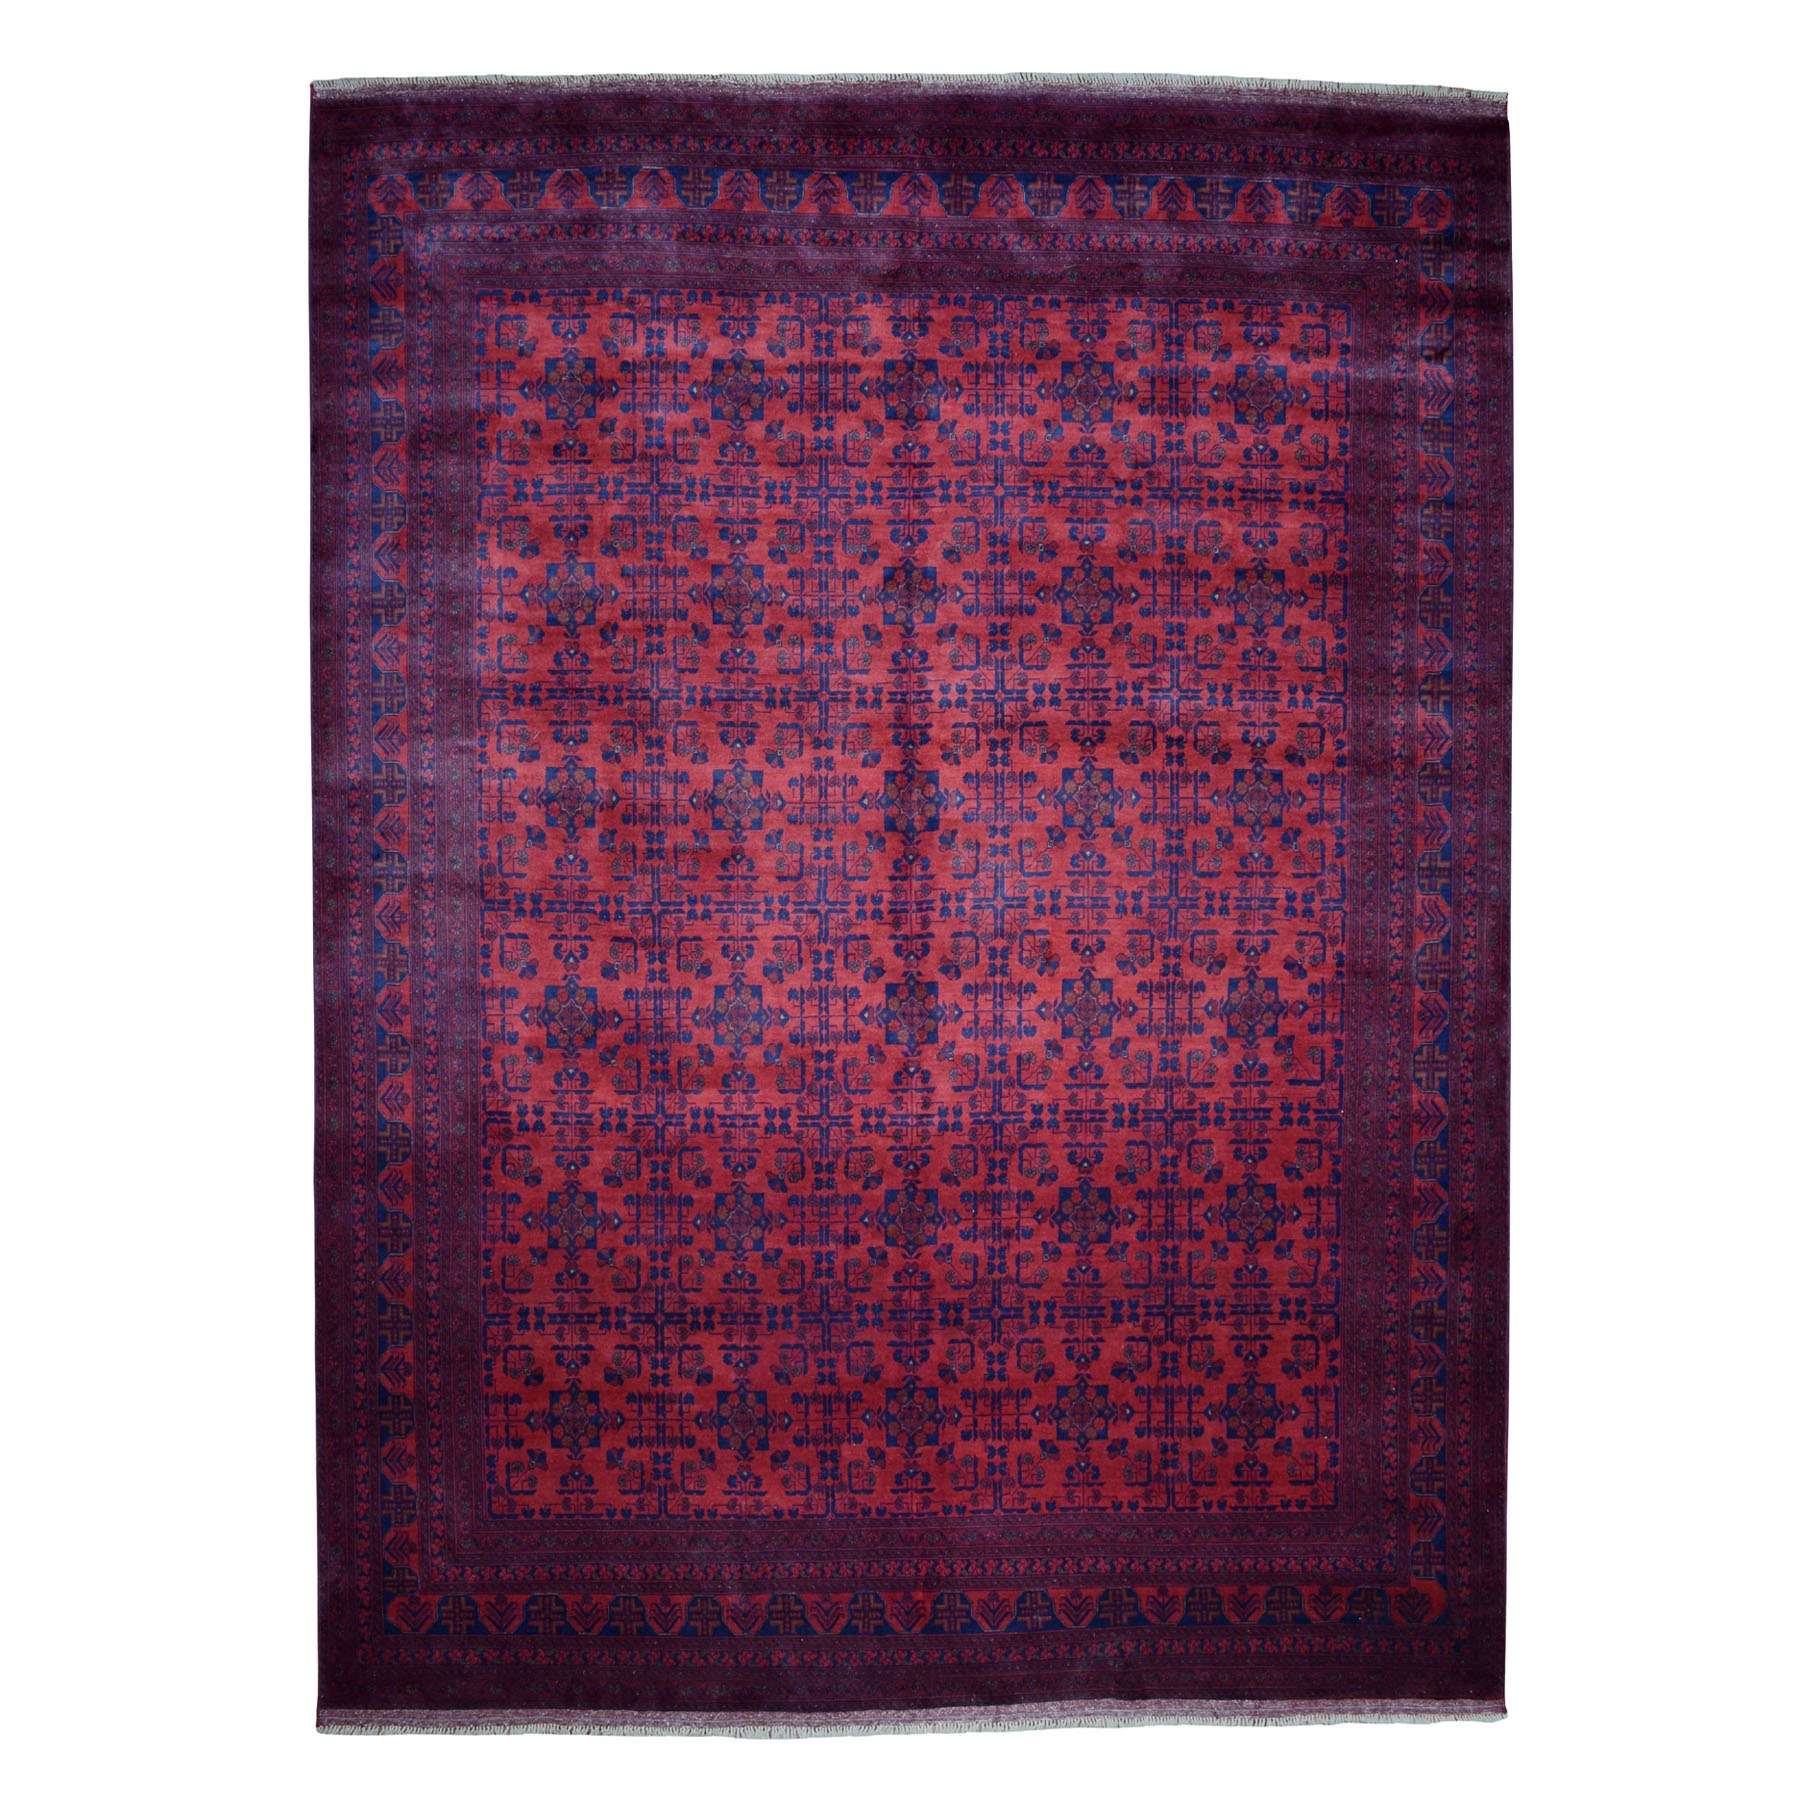 "10'x12'7"" Vintage Look Red Geometric Design Afghan Andkhoy Pure Wool Hand-Knotted Oriental Rug"